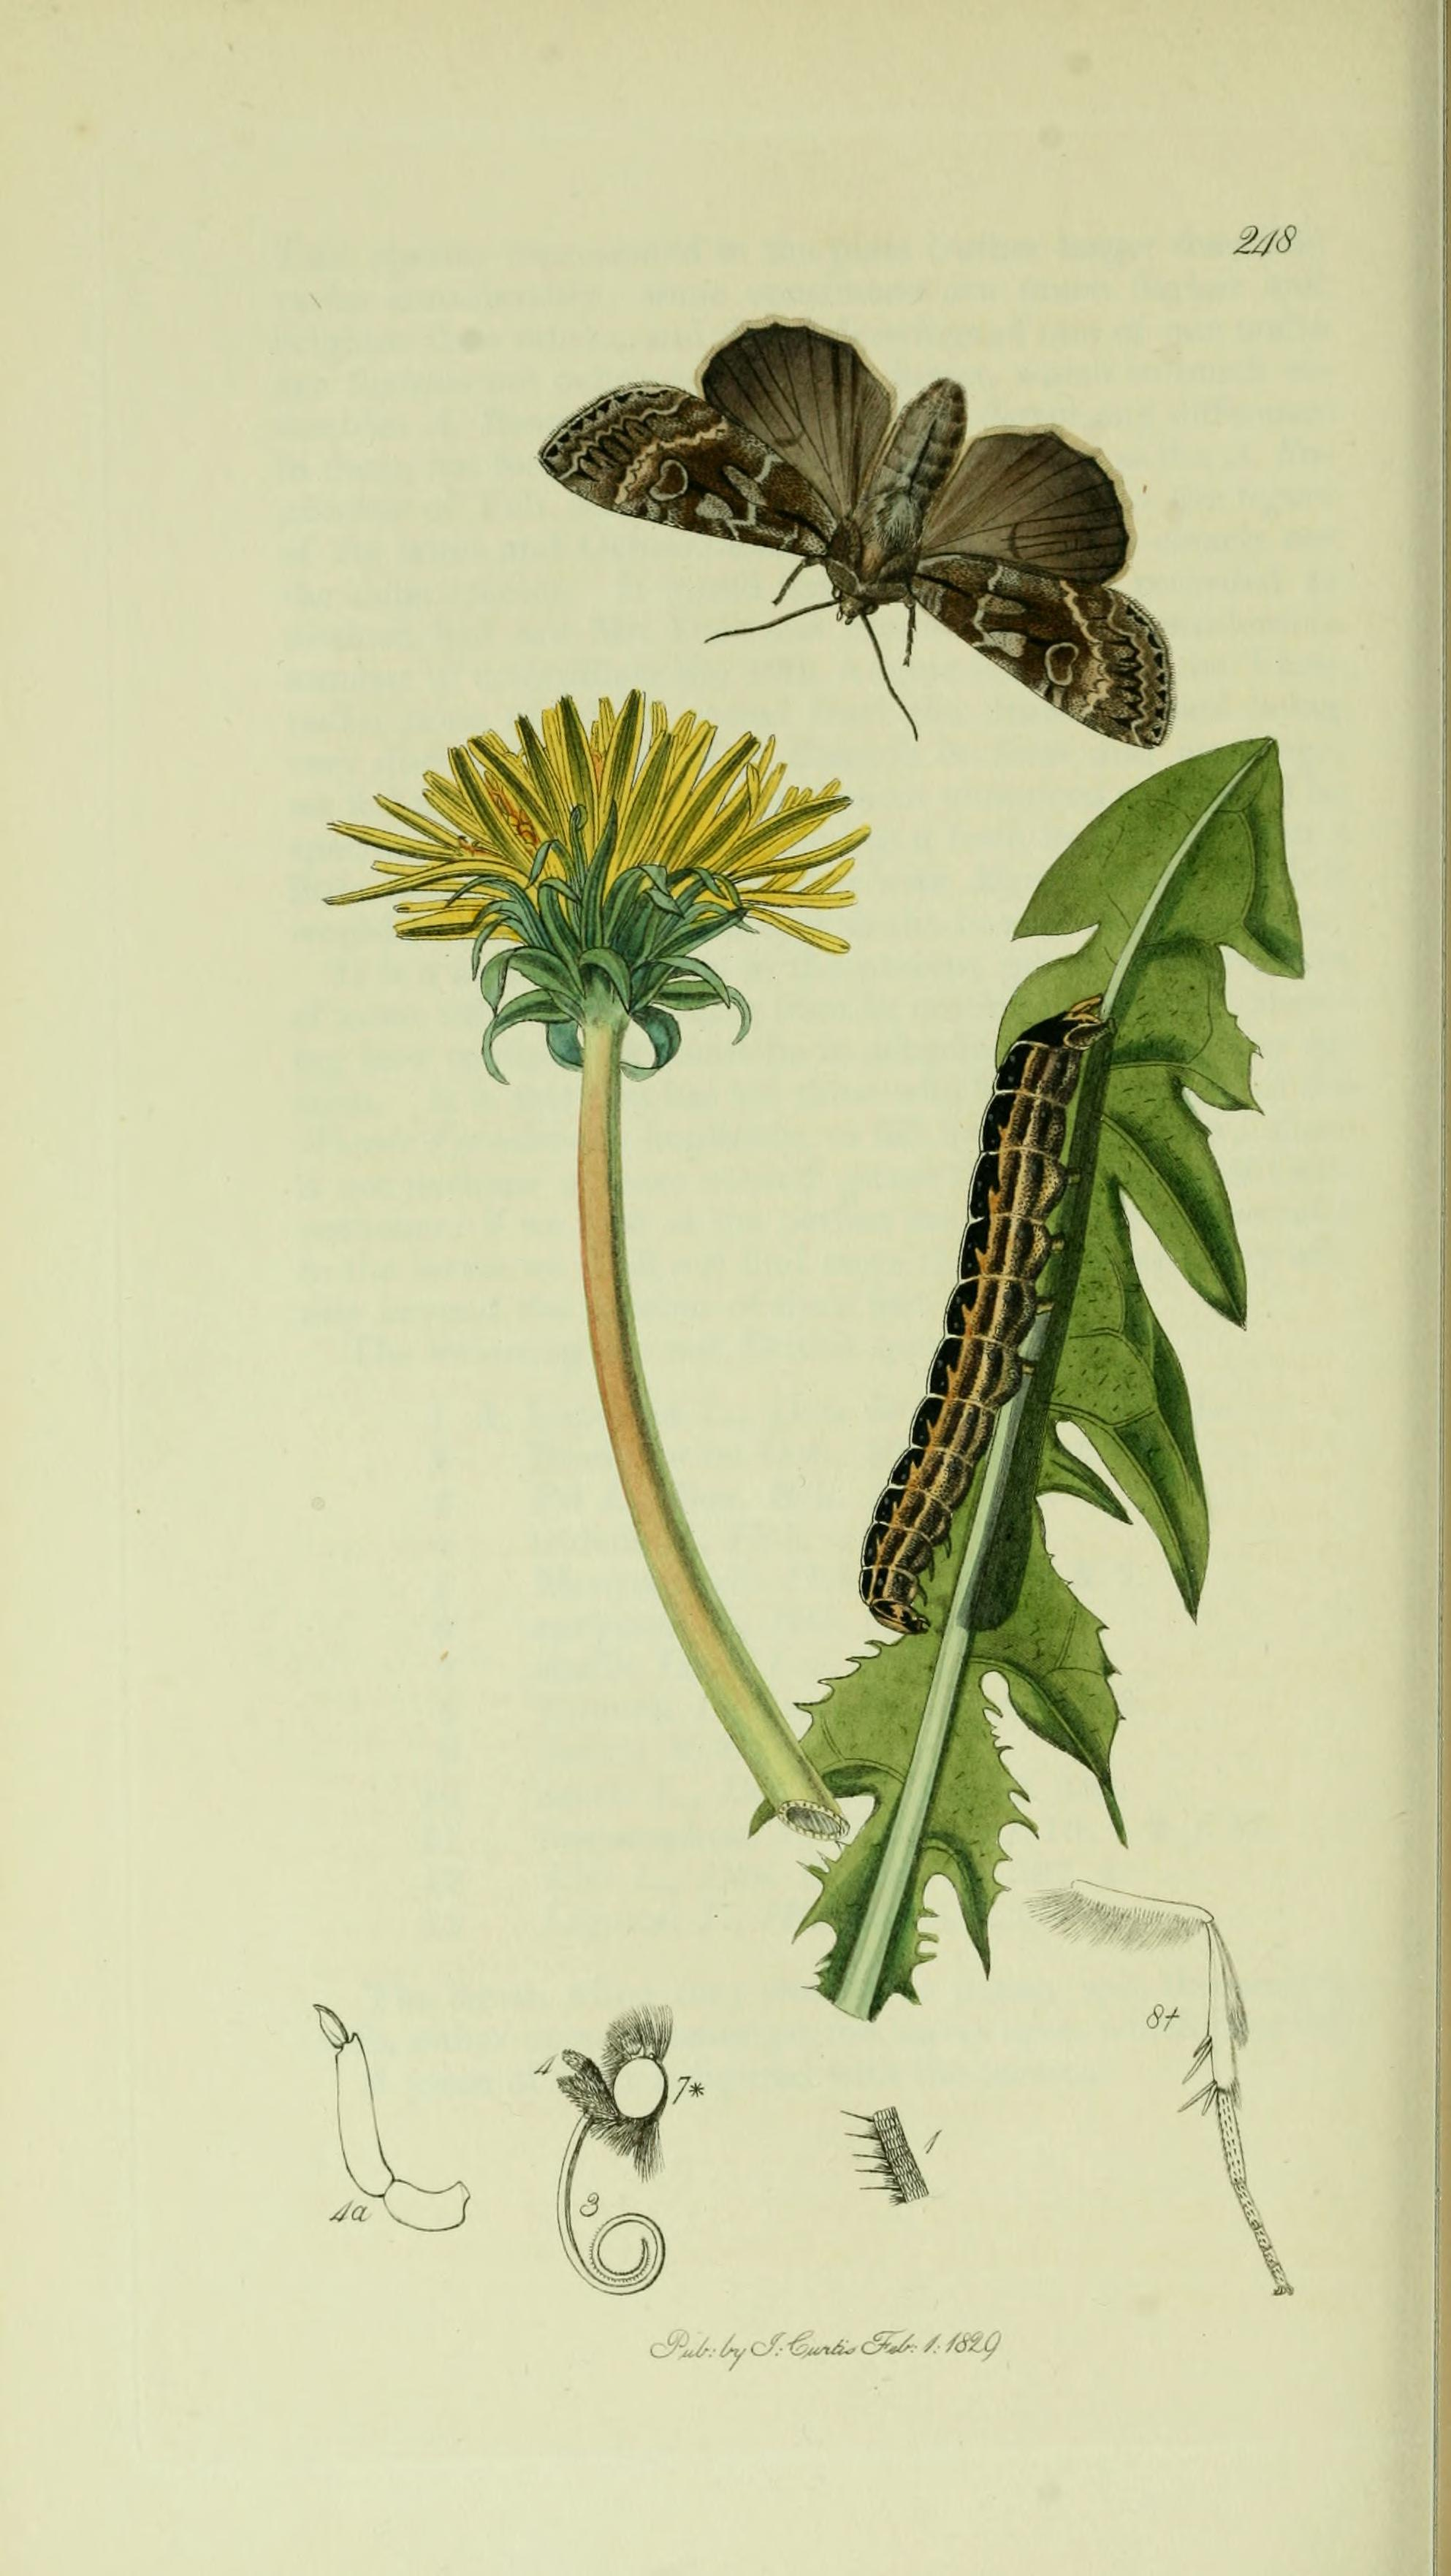 Illustration from John Curtis's British Entomology Volume 5